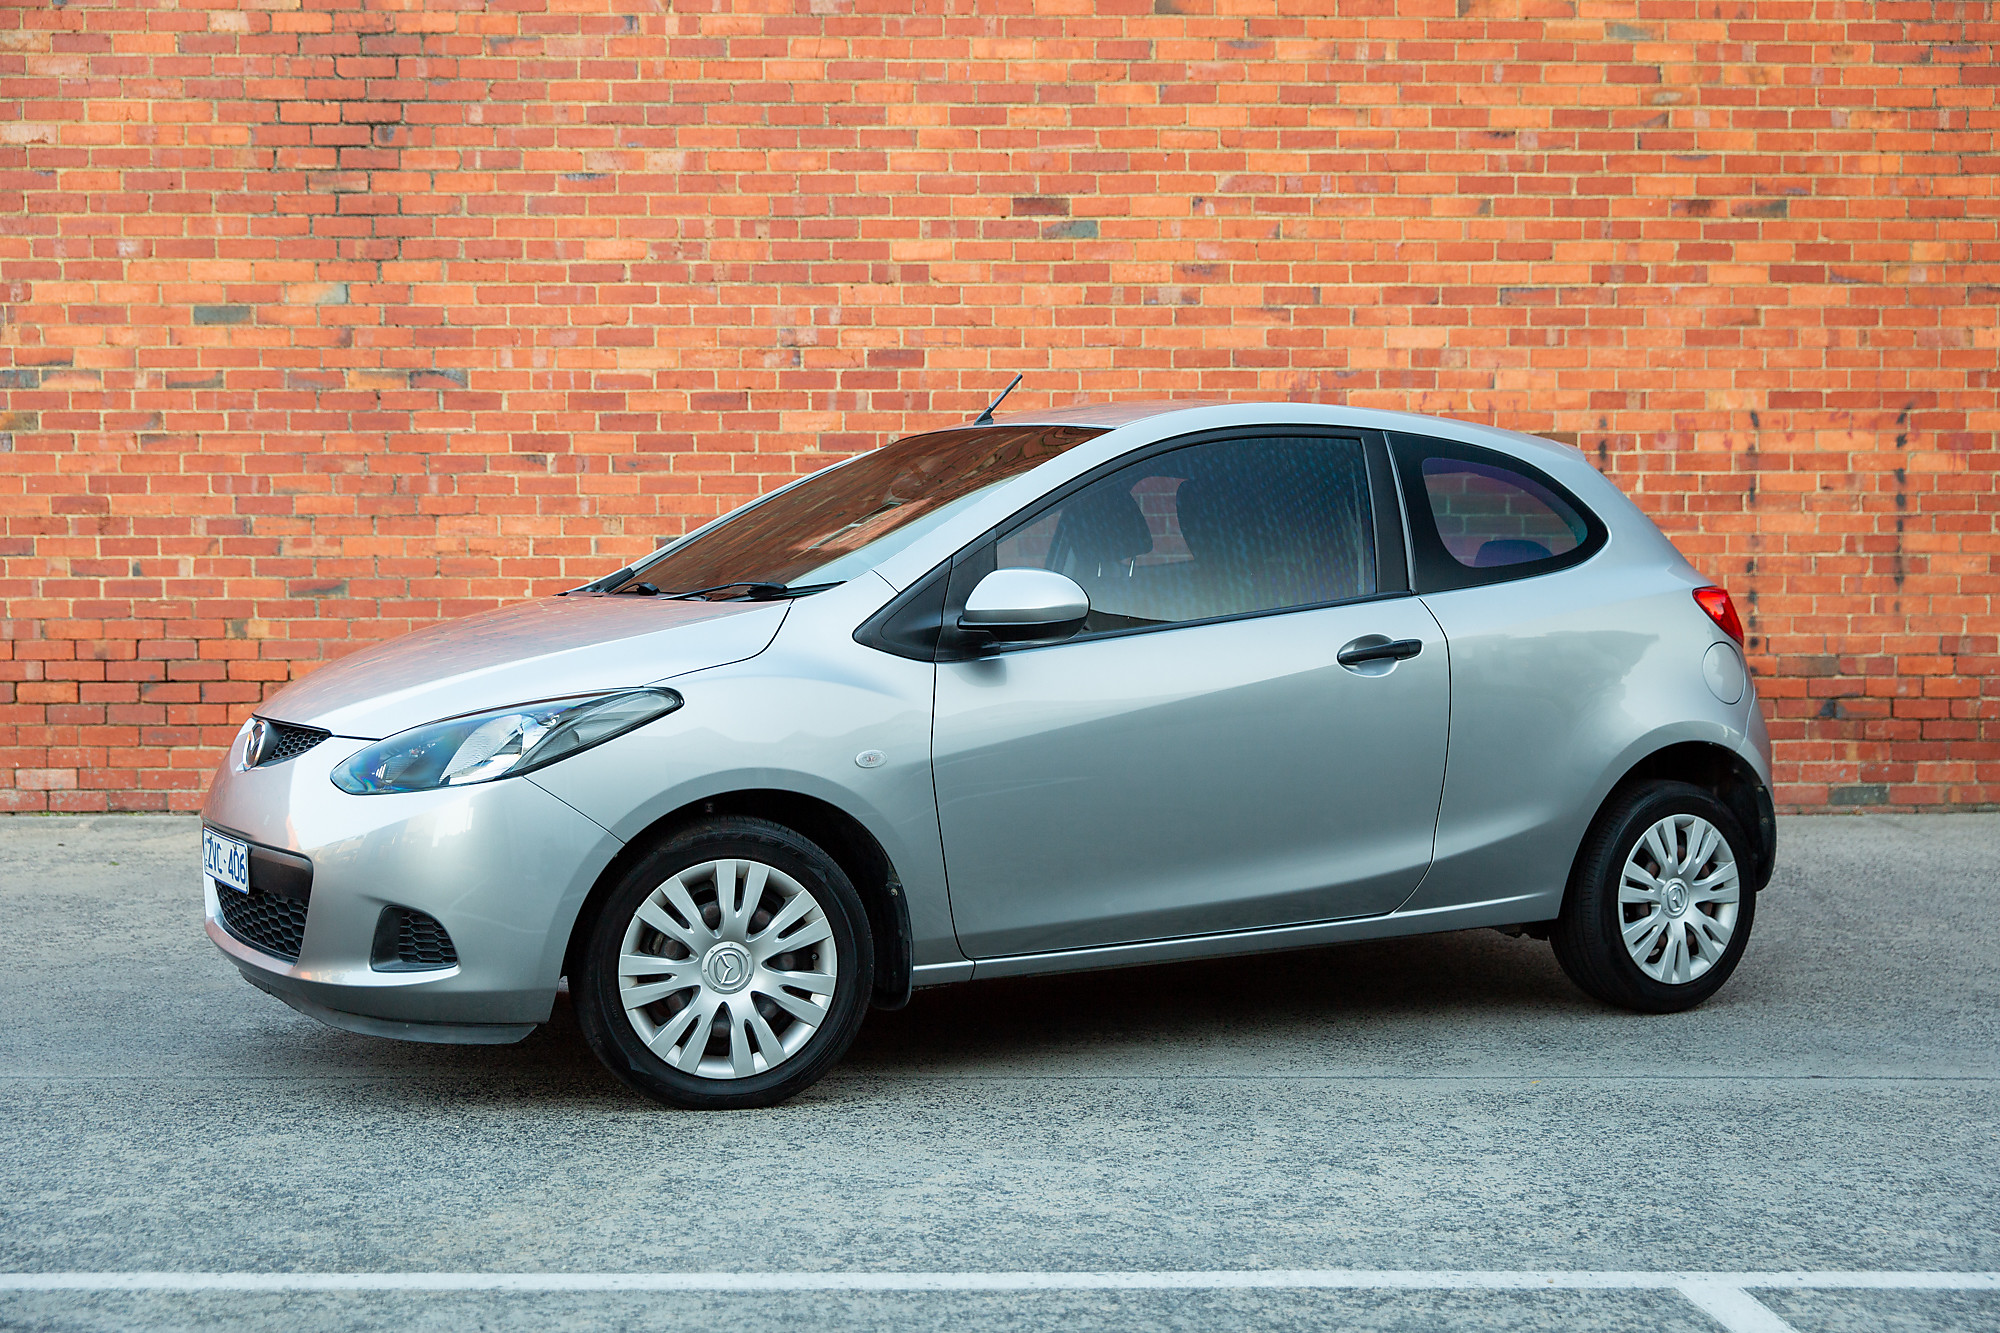 Picture of Lee's 2009 Mazda 2